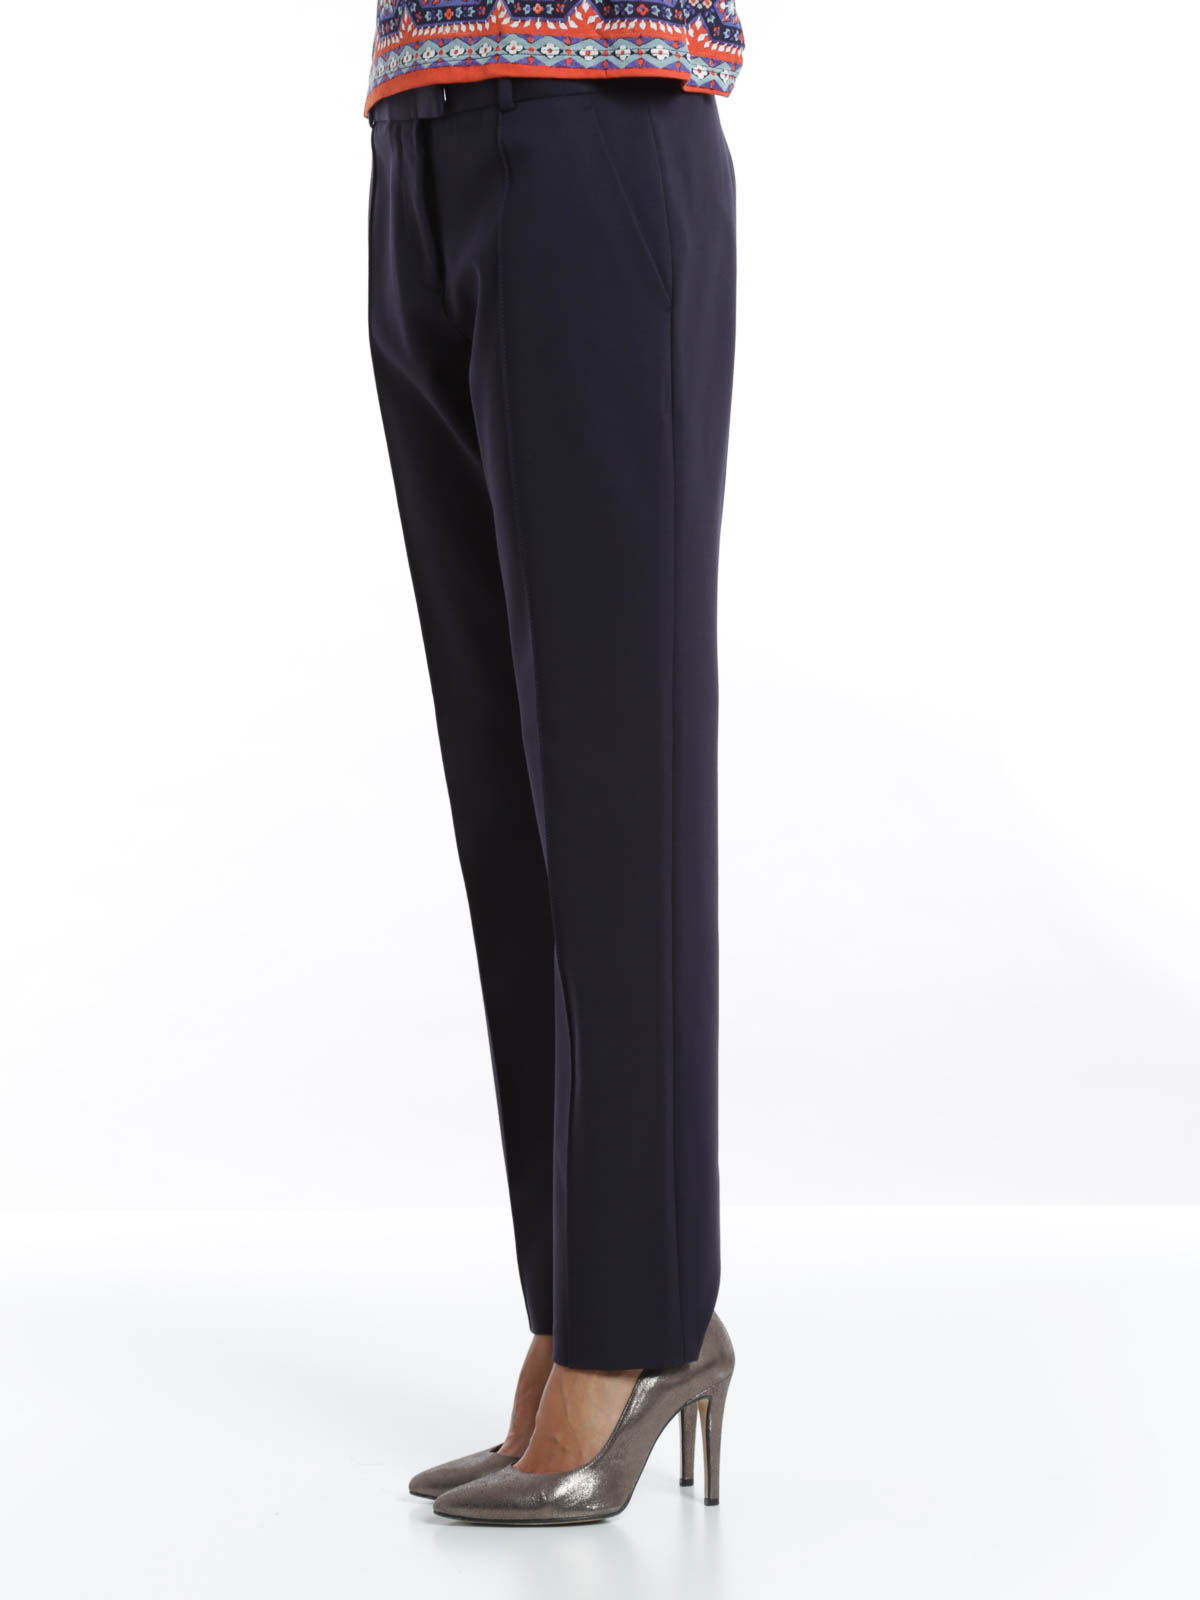 8be8b44228db Tory Burch - Men trousers - Tailored & Formal trousers - 22152201 411